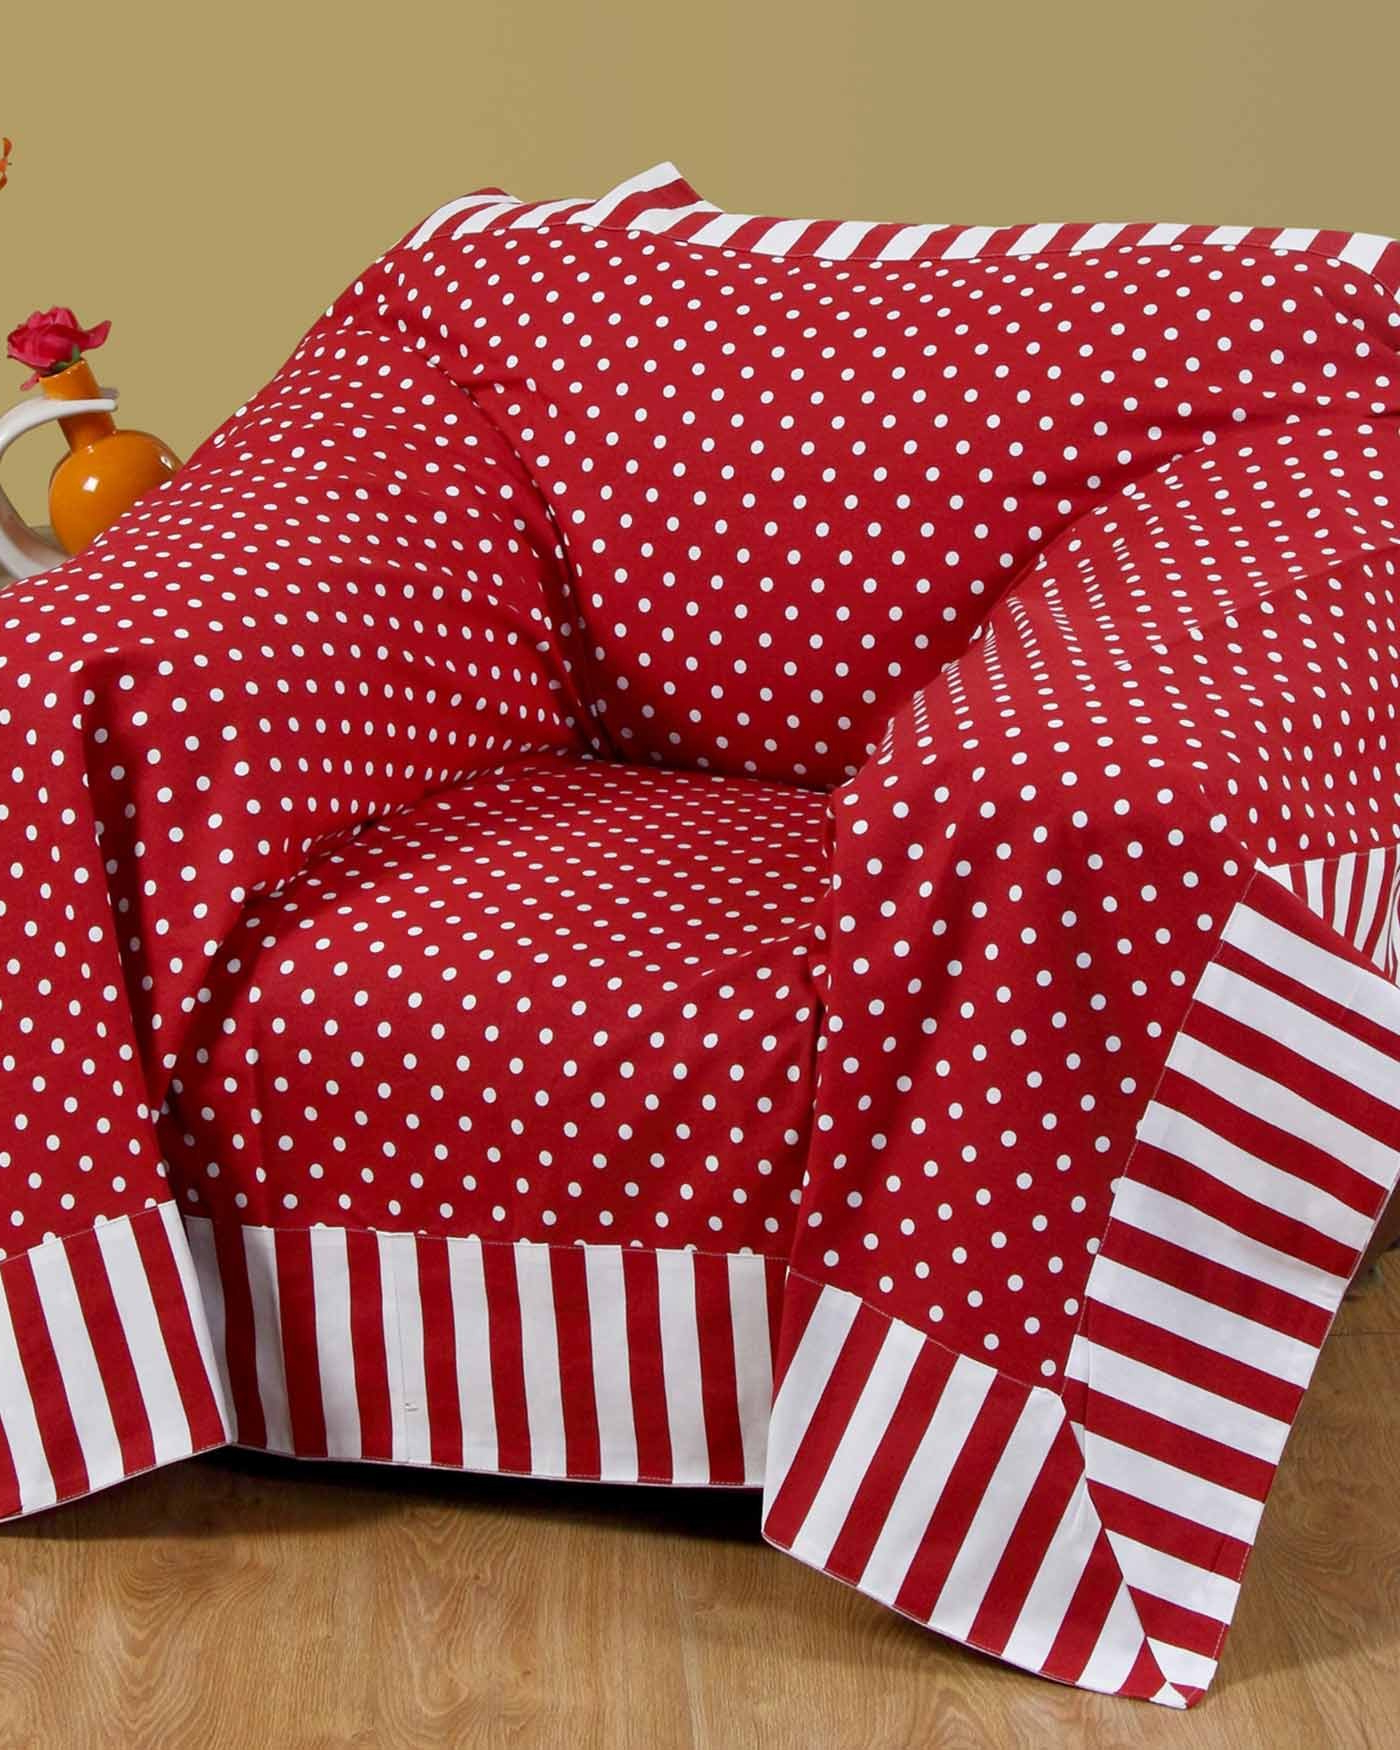 Most Recently Released Throws For Sofas And Chairs With Regard To Cotton Red Polka Dots And Stripes Sofa Throw – Homescapes (View 14 of 20)